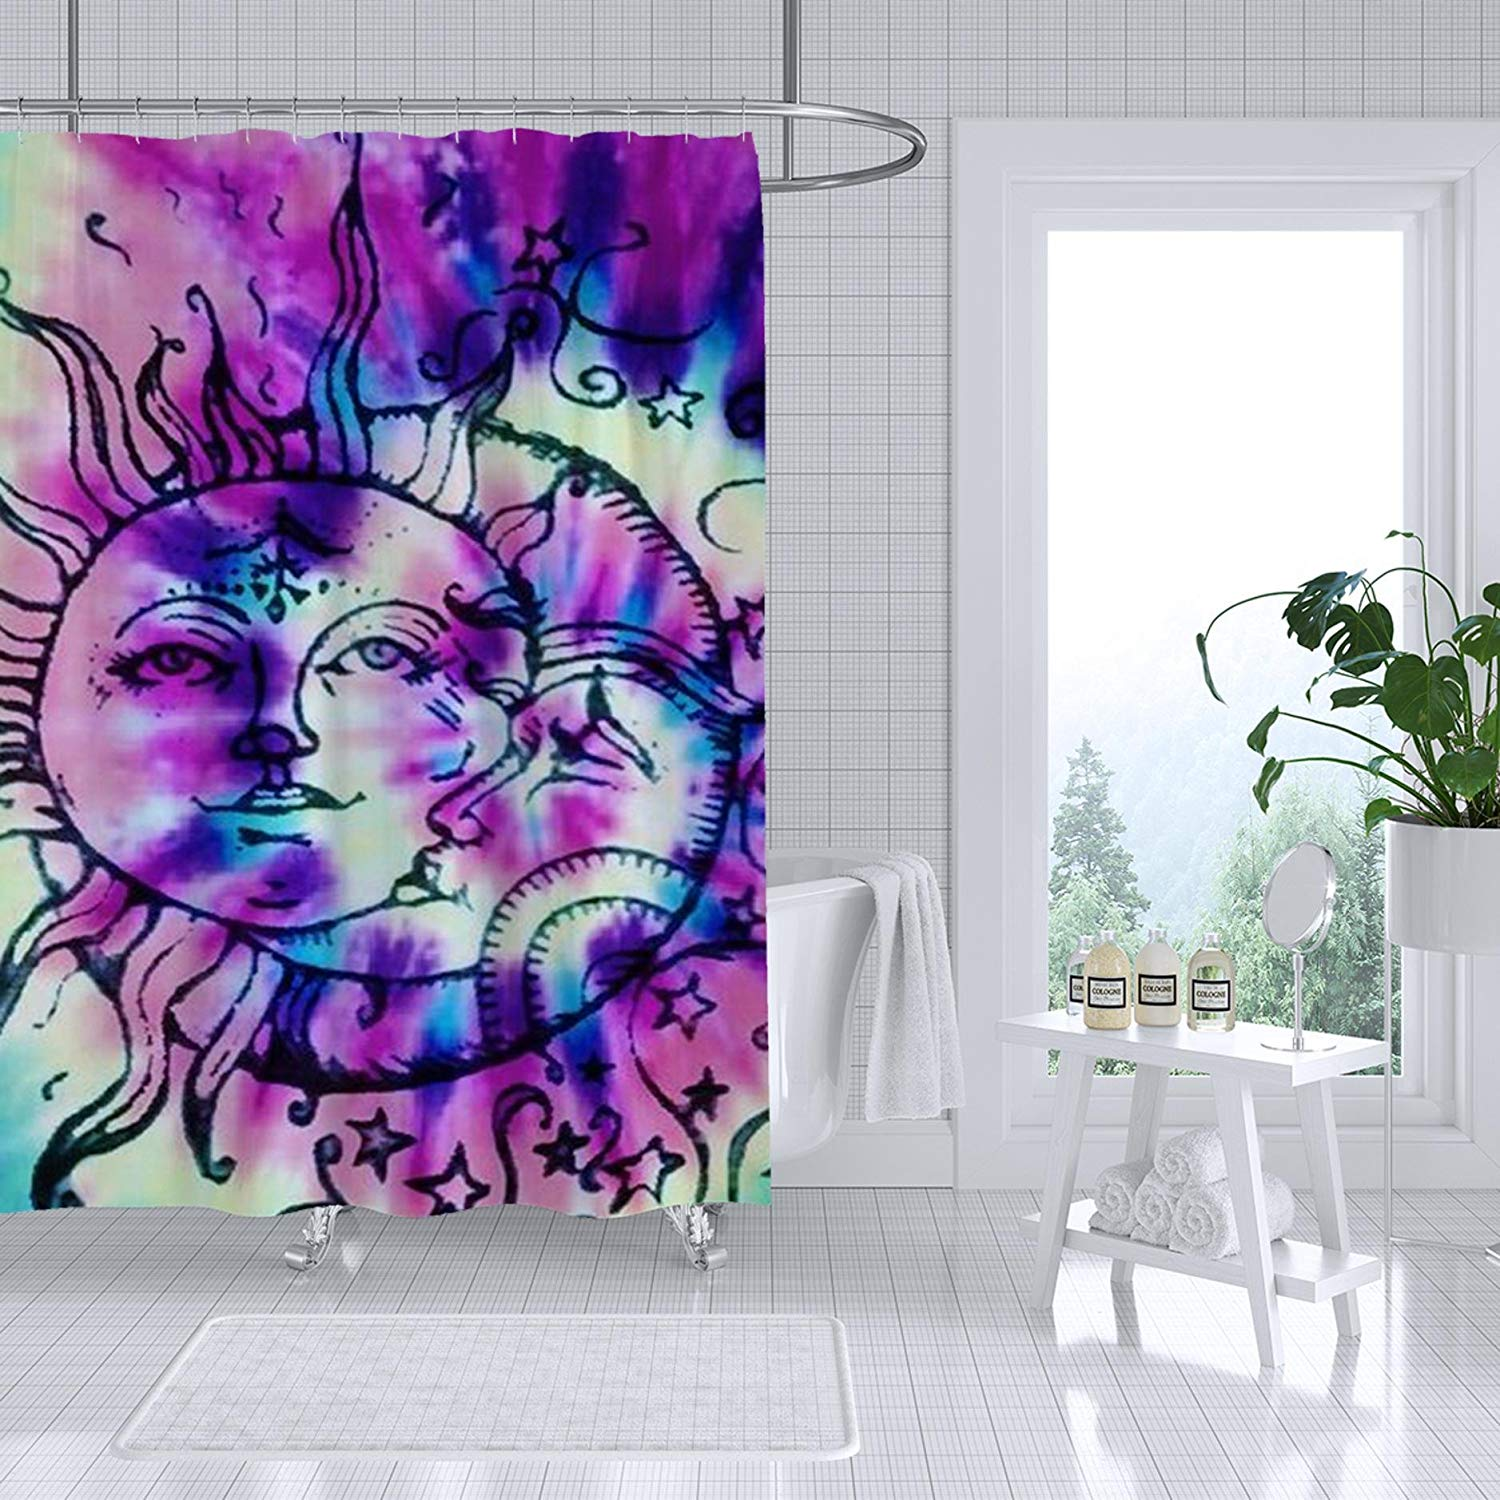 Adiucmcz Tie Dye Hippie Shower Curtain Fabric Bathroom Decor Set Waterproof Mildew With 12